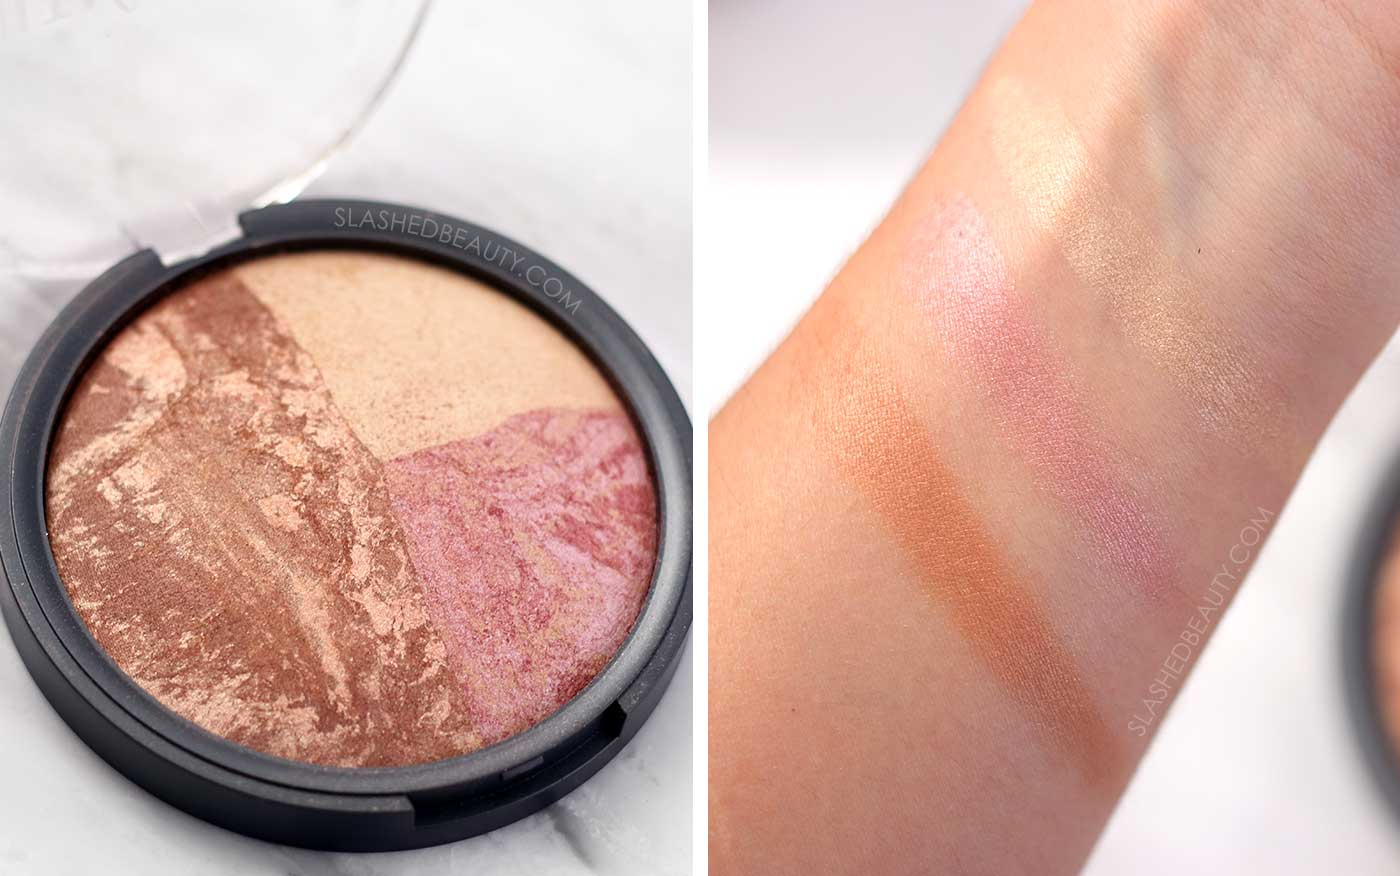 Ulta Beauty Baked Sculpt & Glow Palette Swatches | 5 Best Glowy Makeup Products from the Drugstore | Slashed Beauty